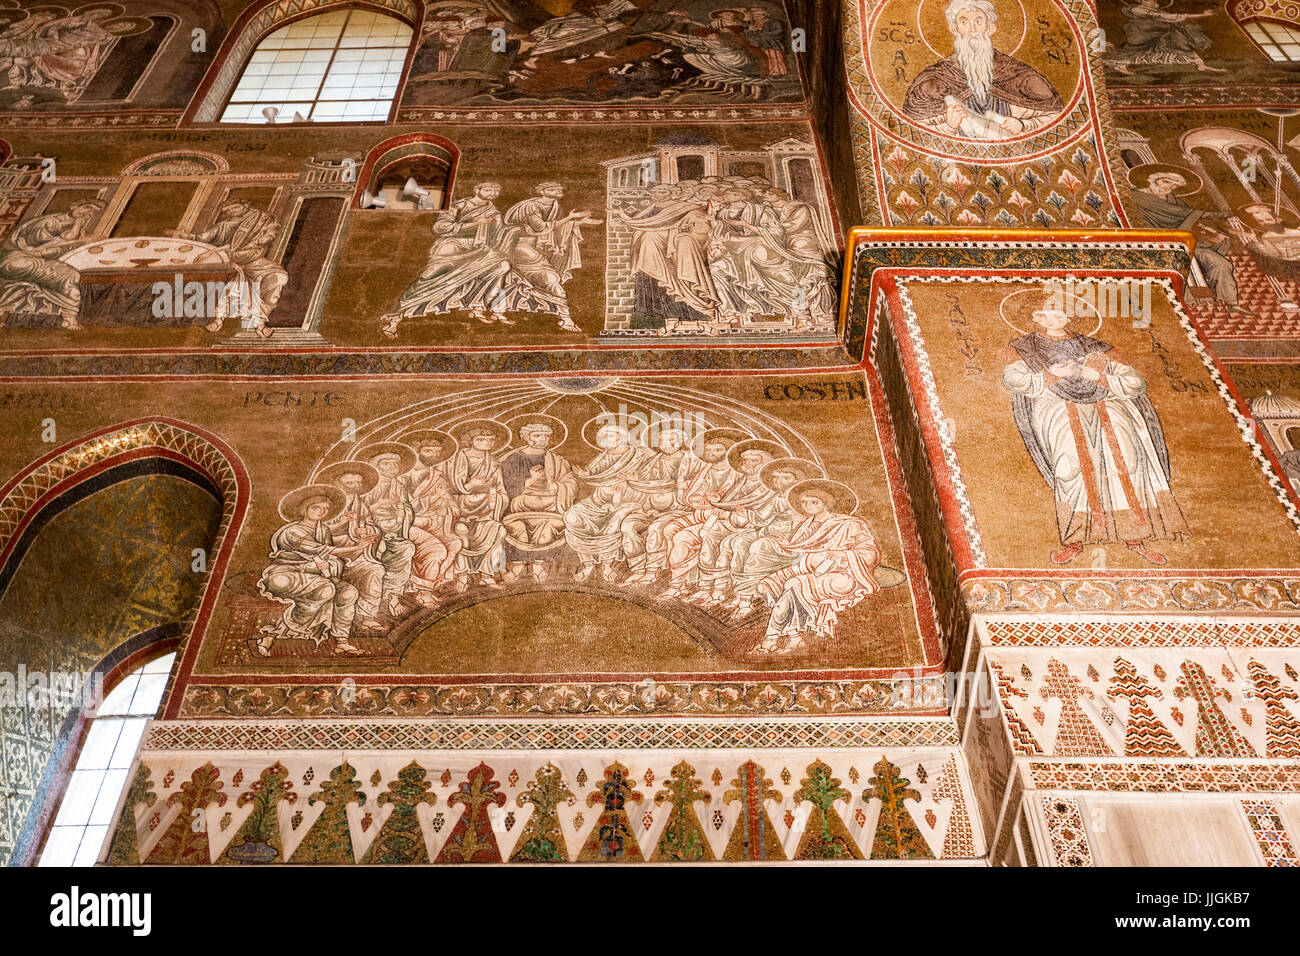 Pentecost mosaics in Monreale Cathedral, Duomo,  Monreale, Sicily, Italy - Stock Image